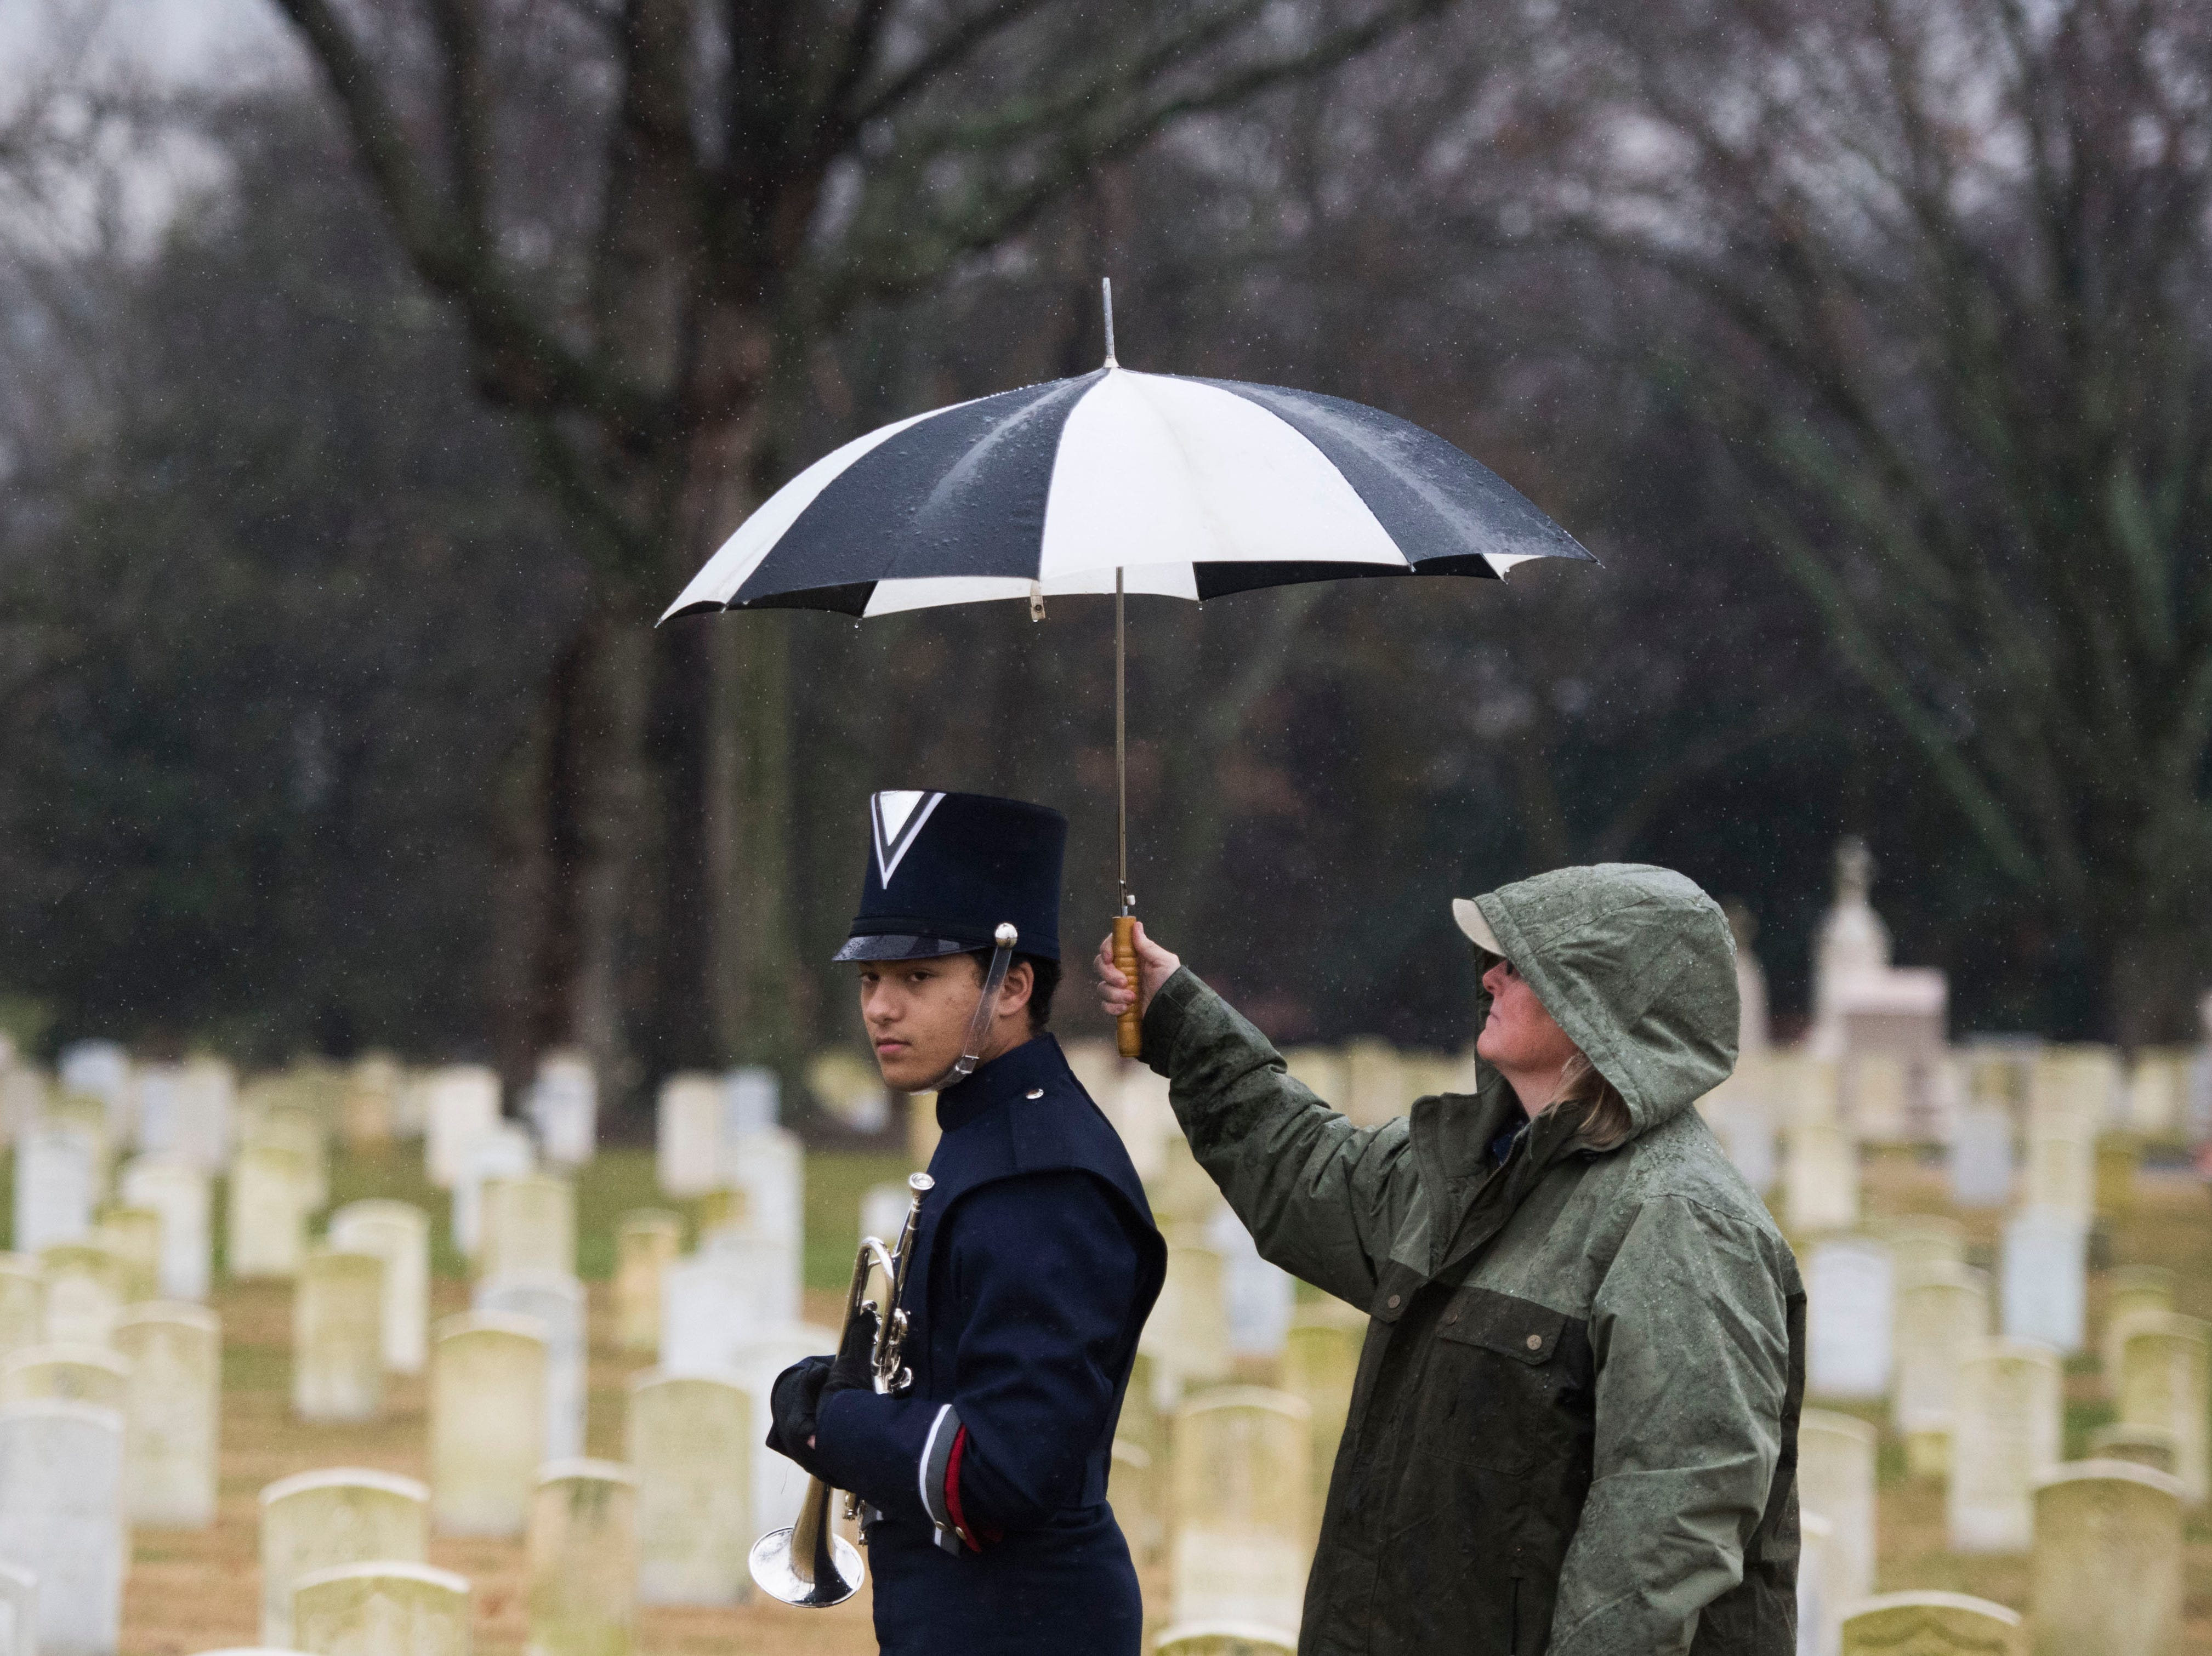 Dylan Desaulniers of South-Doyle high school waits to play taps during a Wreaths Across America ceremony at Knoxville National Cemetery north of downtown Knoxville Saturday, Dec. 15, 2018. Evergreen wreaths were placed on veteran headstones.